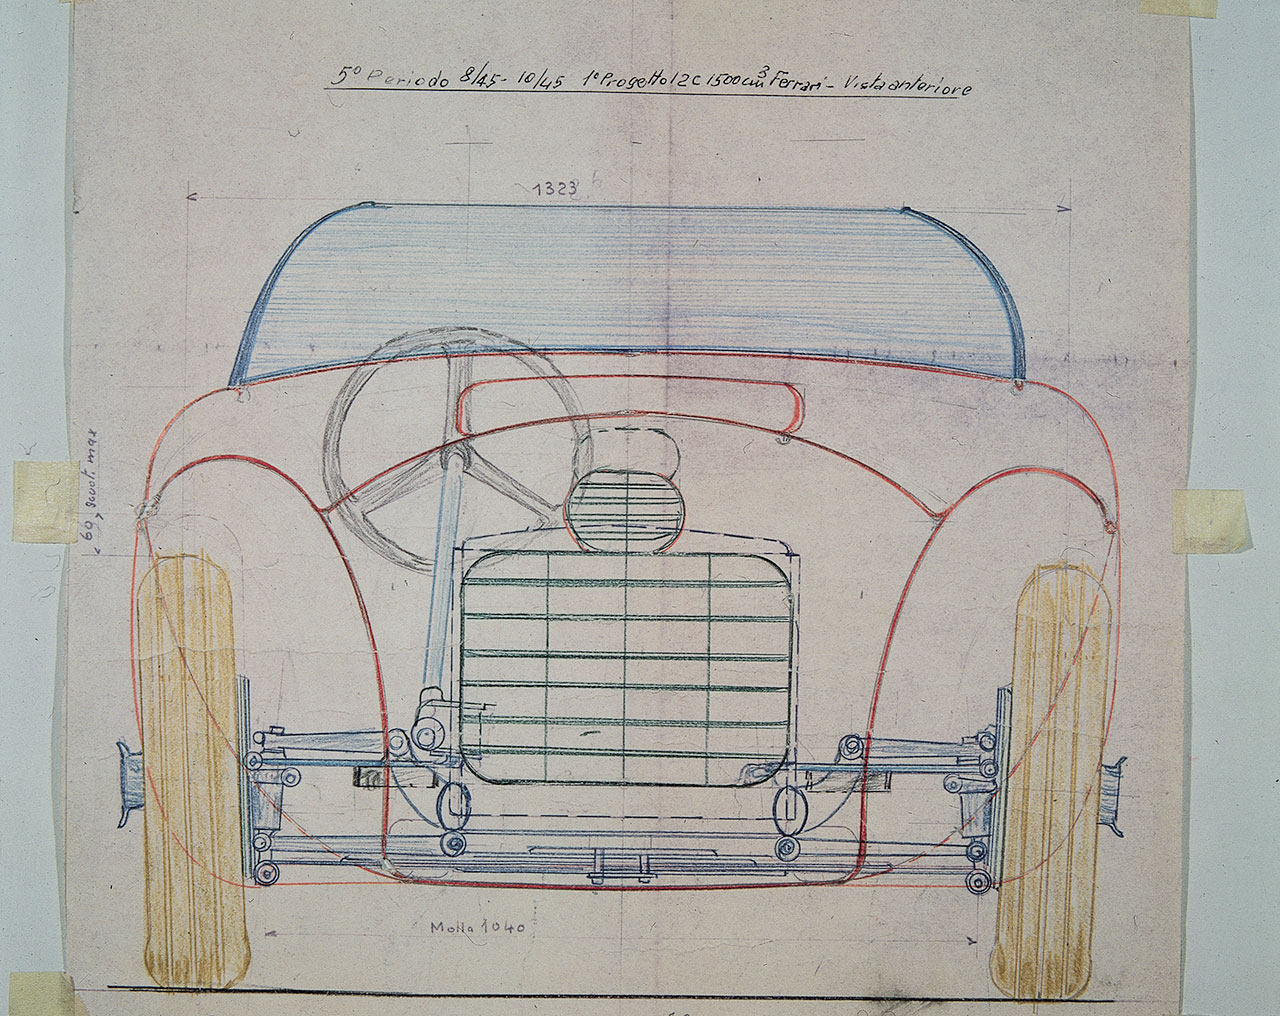 Front View with mechanical transparency of the first Ferrari car, the 125 S. - Project of Gioachino Colombo carried out in August-October 1945.Photo courtesy of Ferrari.